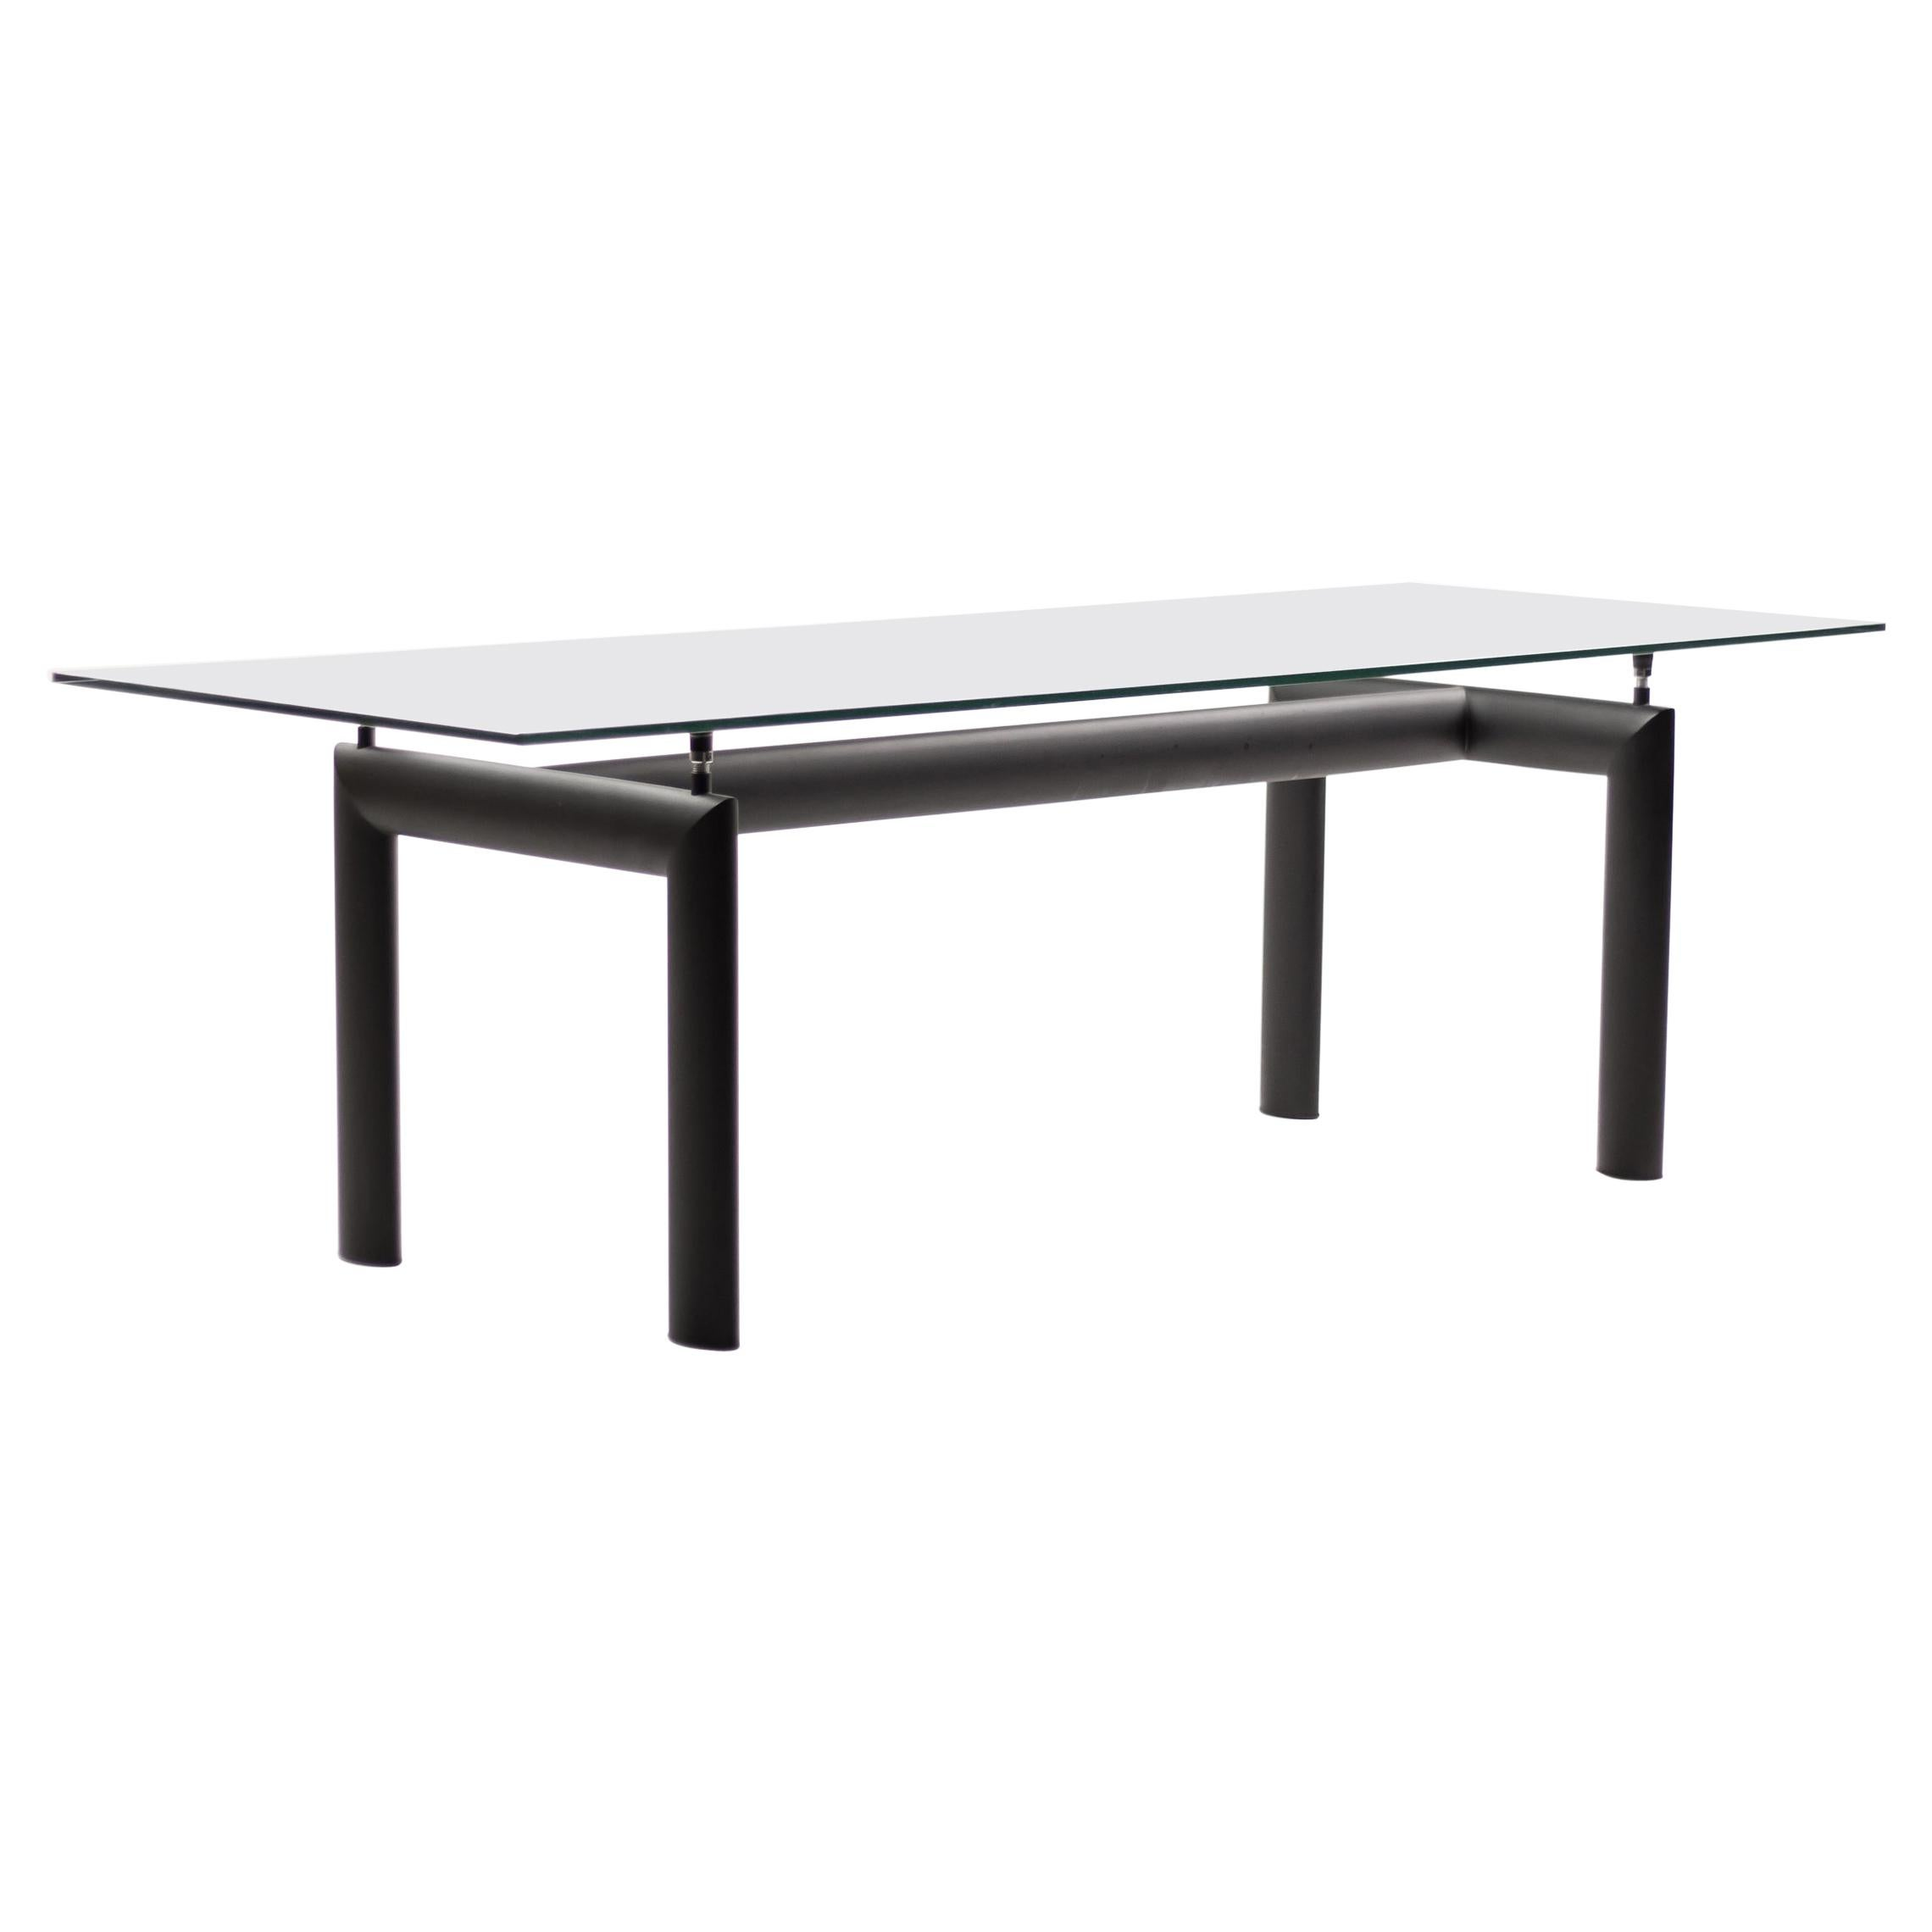 LC6 Table by Le Corbusier, Jeanneret and Perriand for Cassina